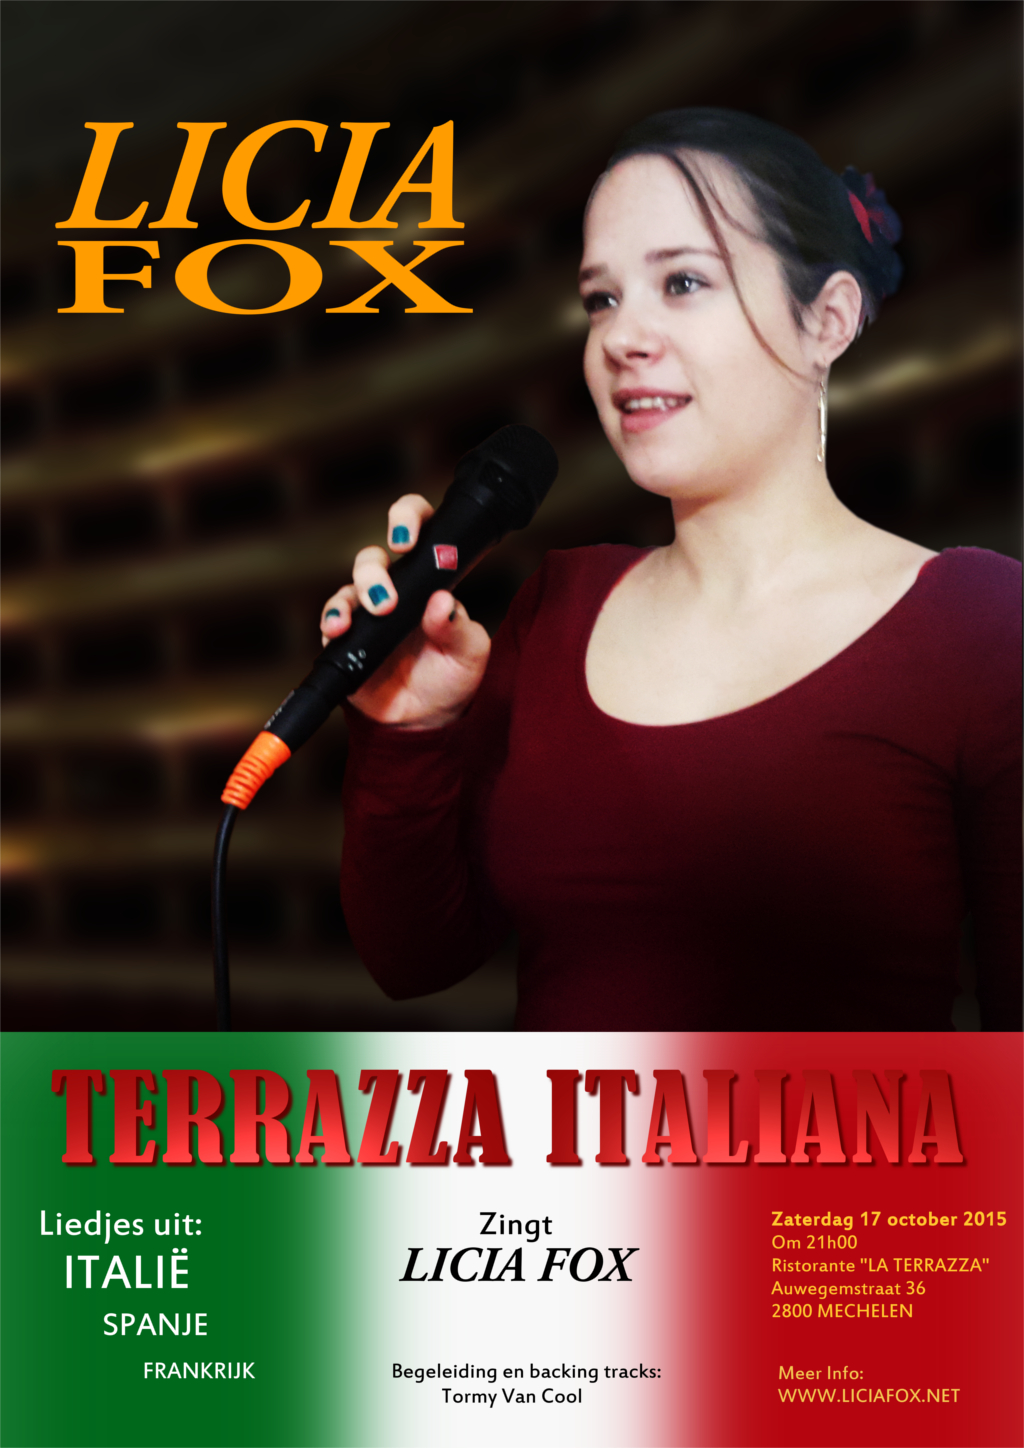 POster of TERRAZZA ITALIANA sings: Licia Fox